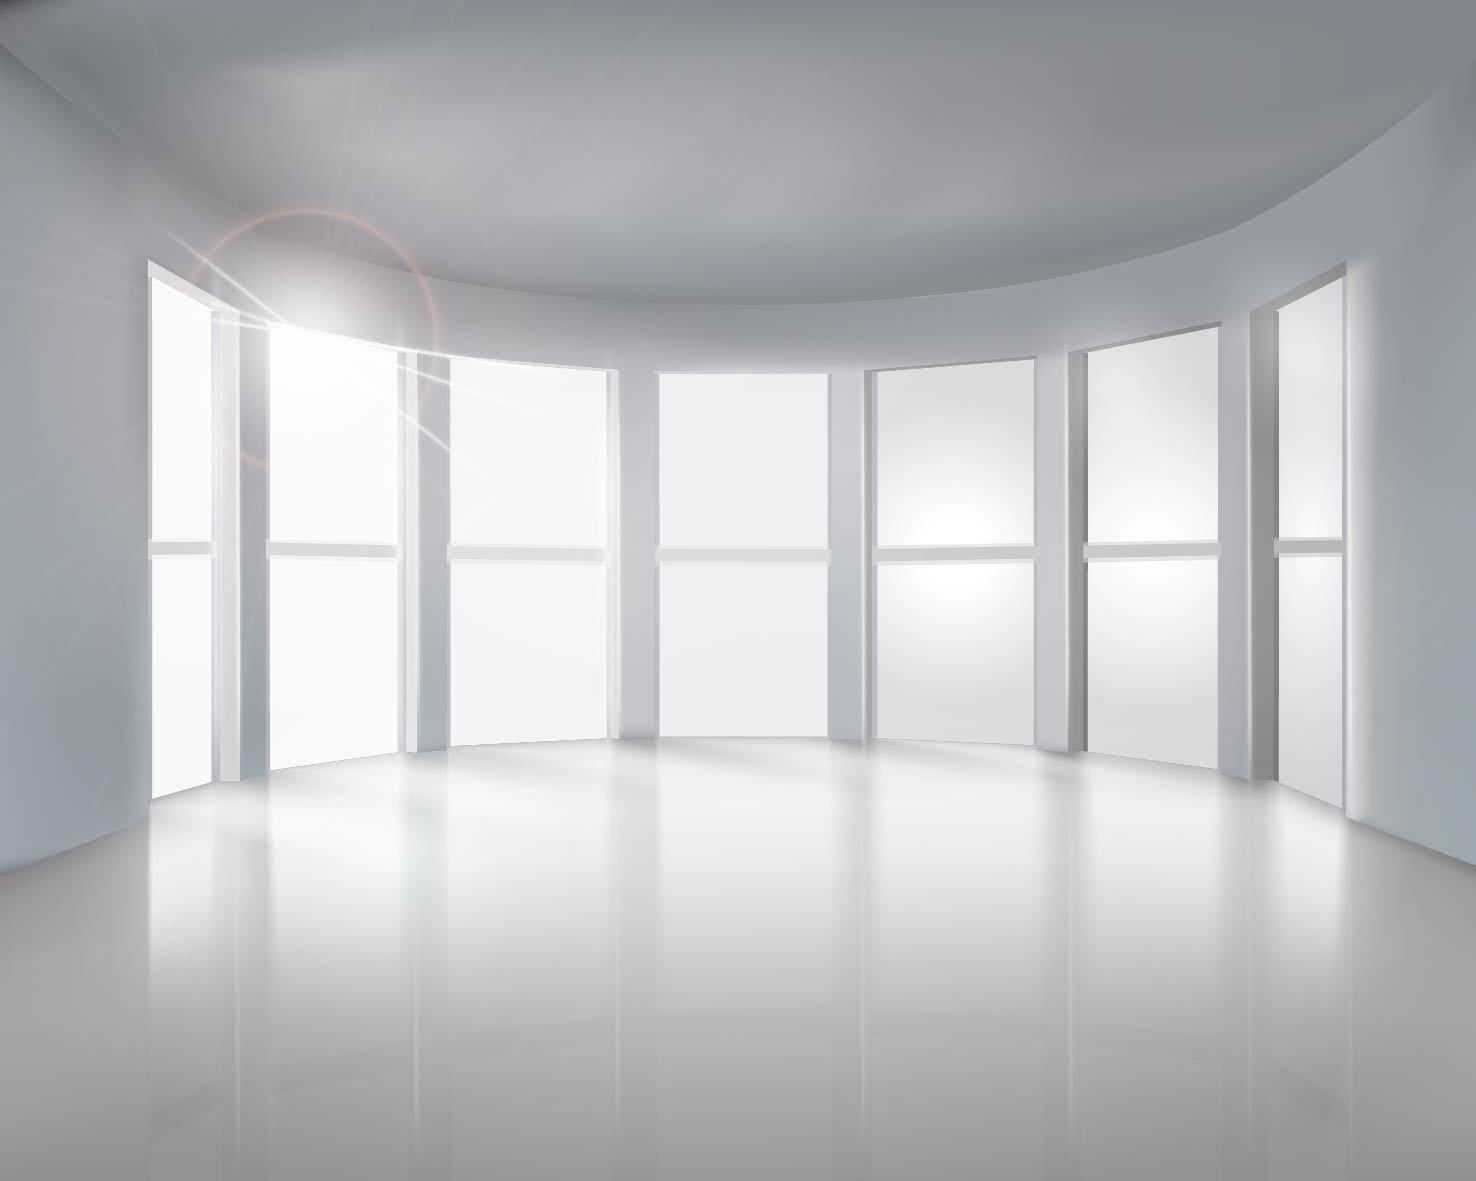 Realistic Empty Room with Big Windows - Vector download